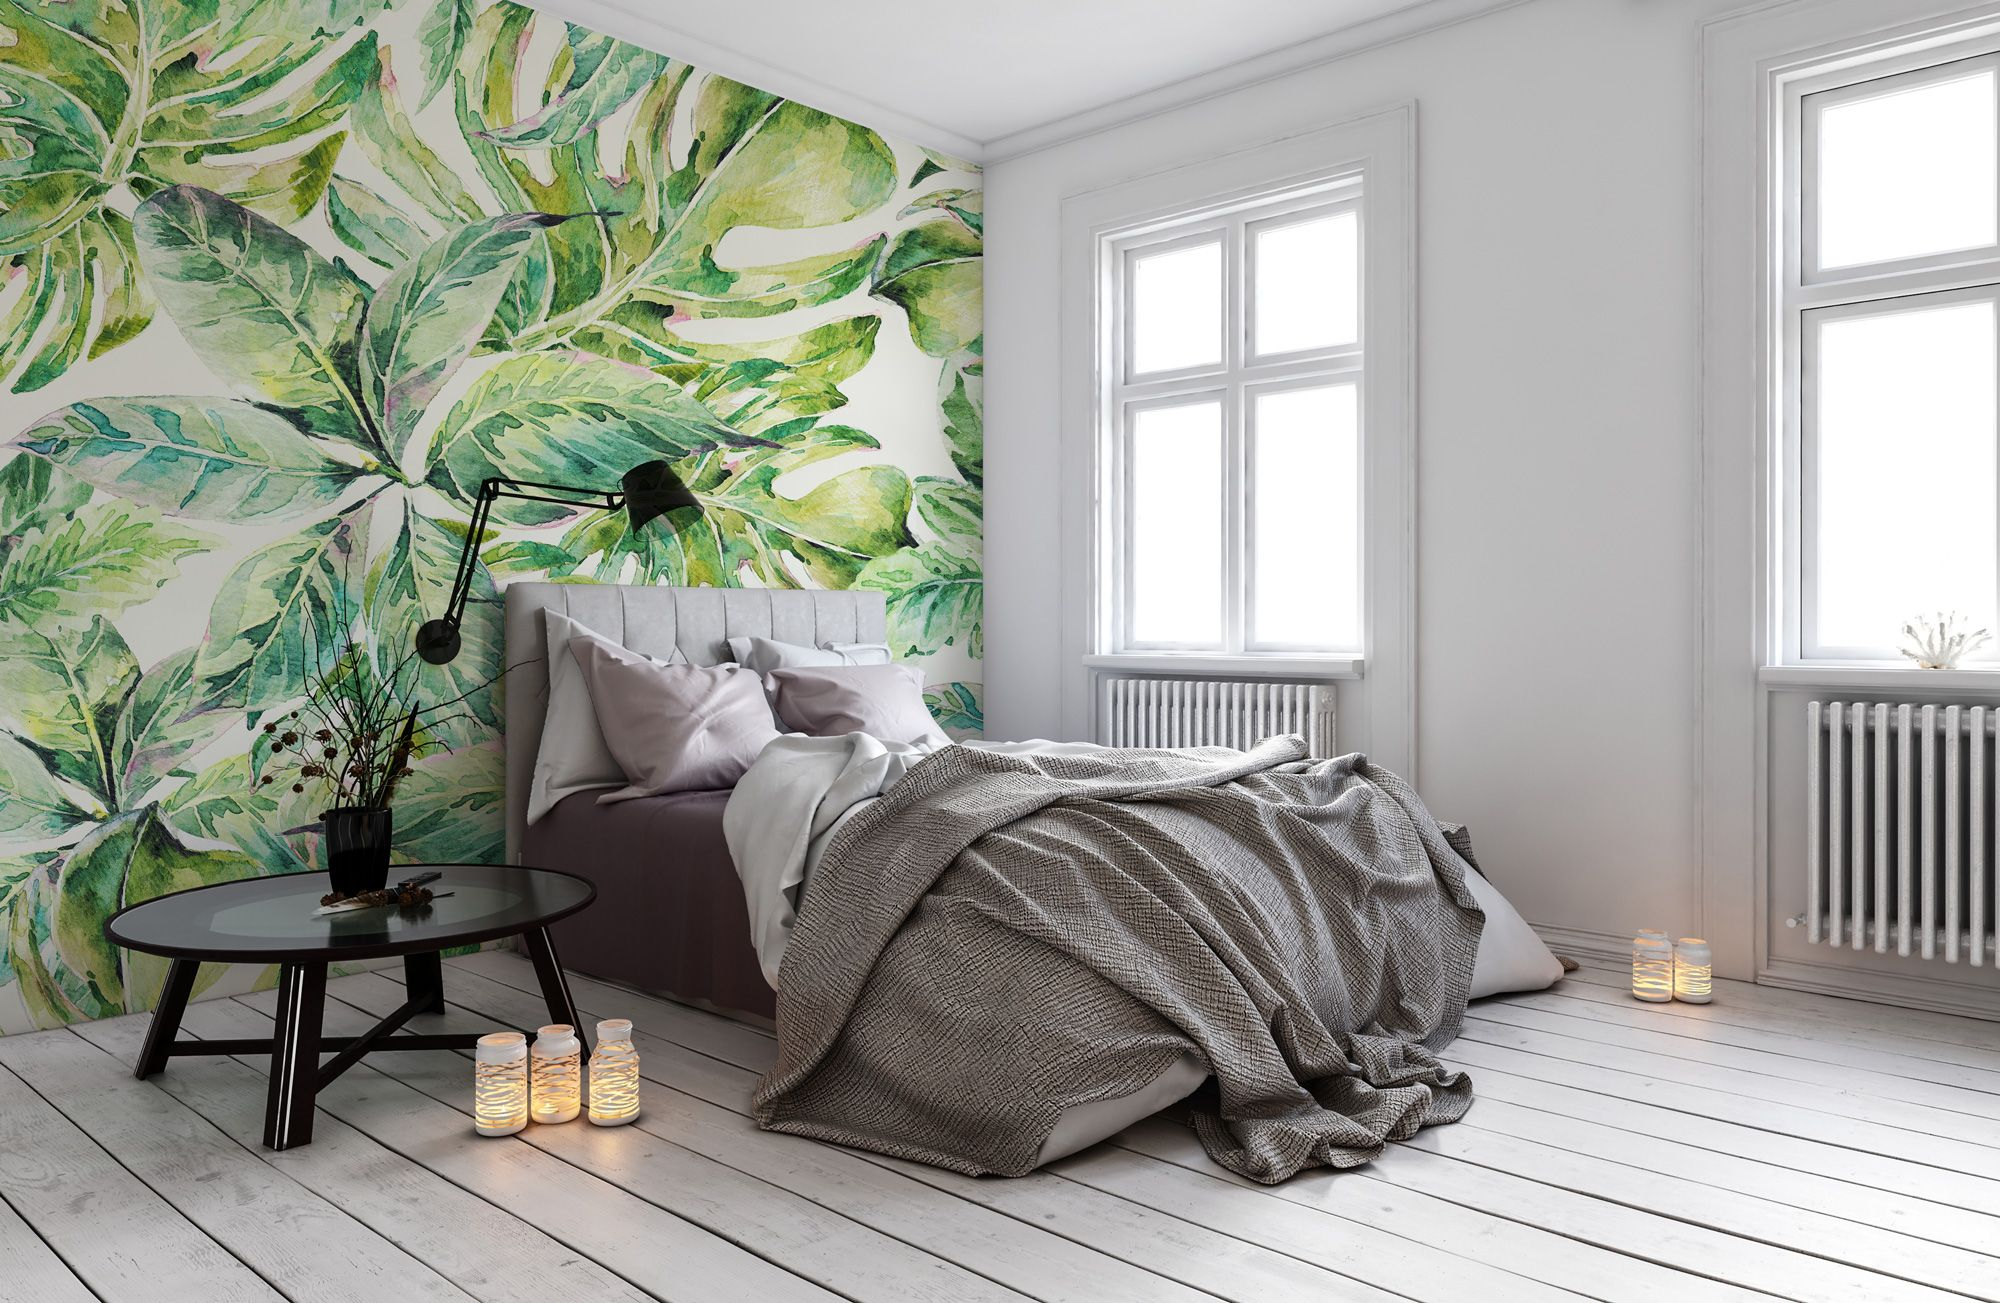 Green Palms Guest bedroom decor, Tropical bedroom decor